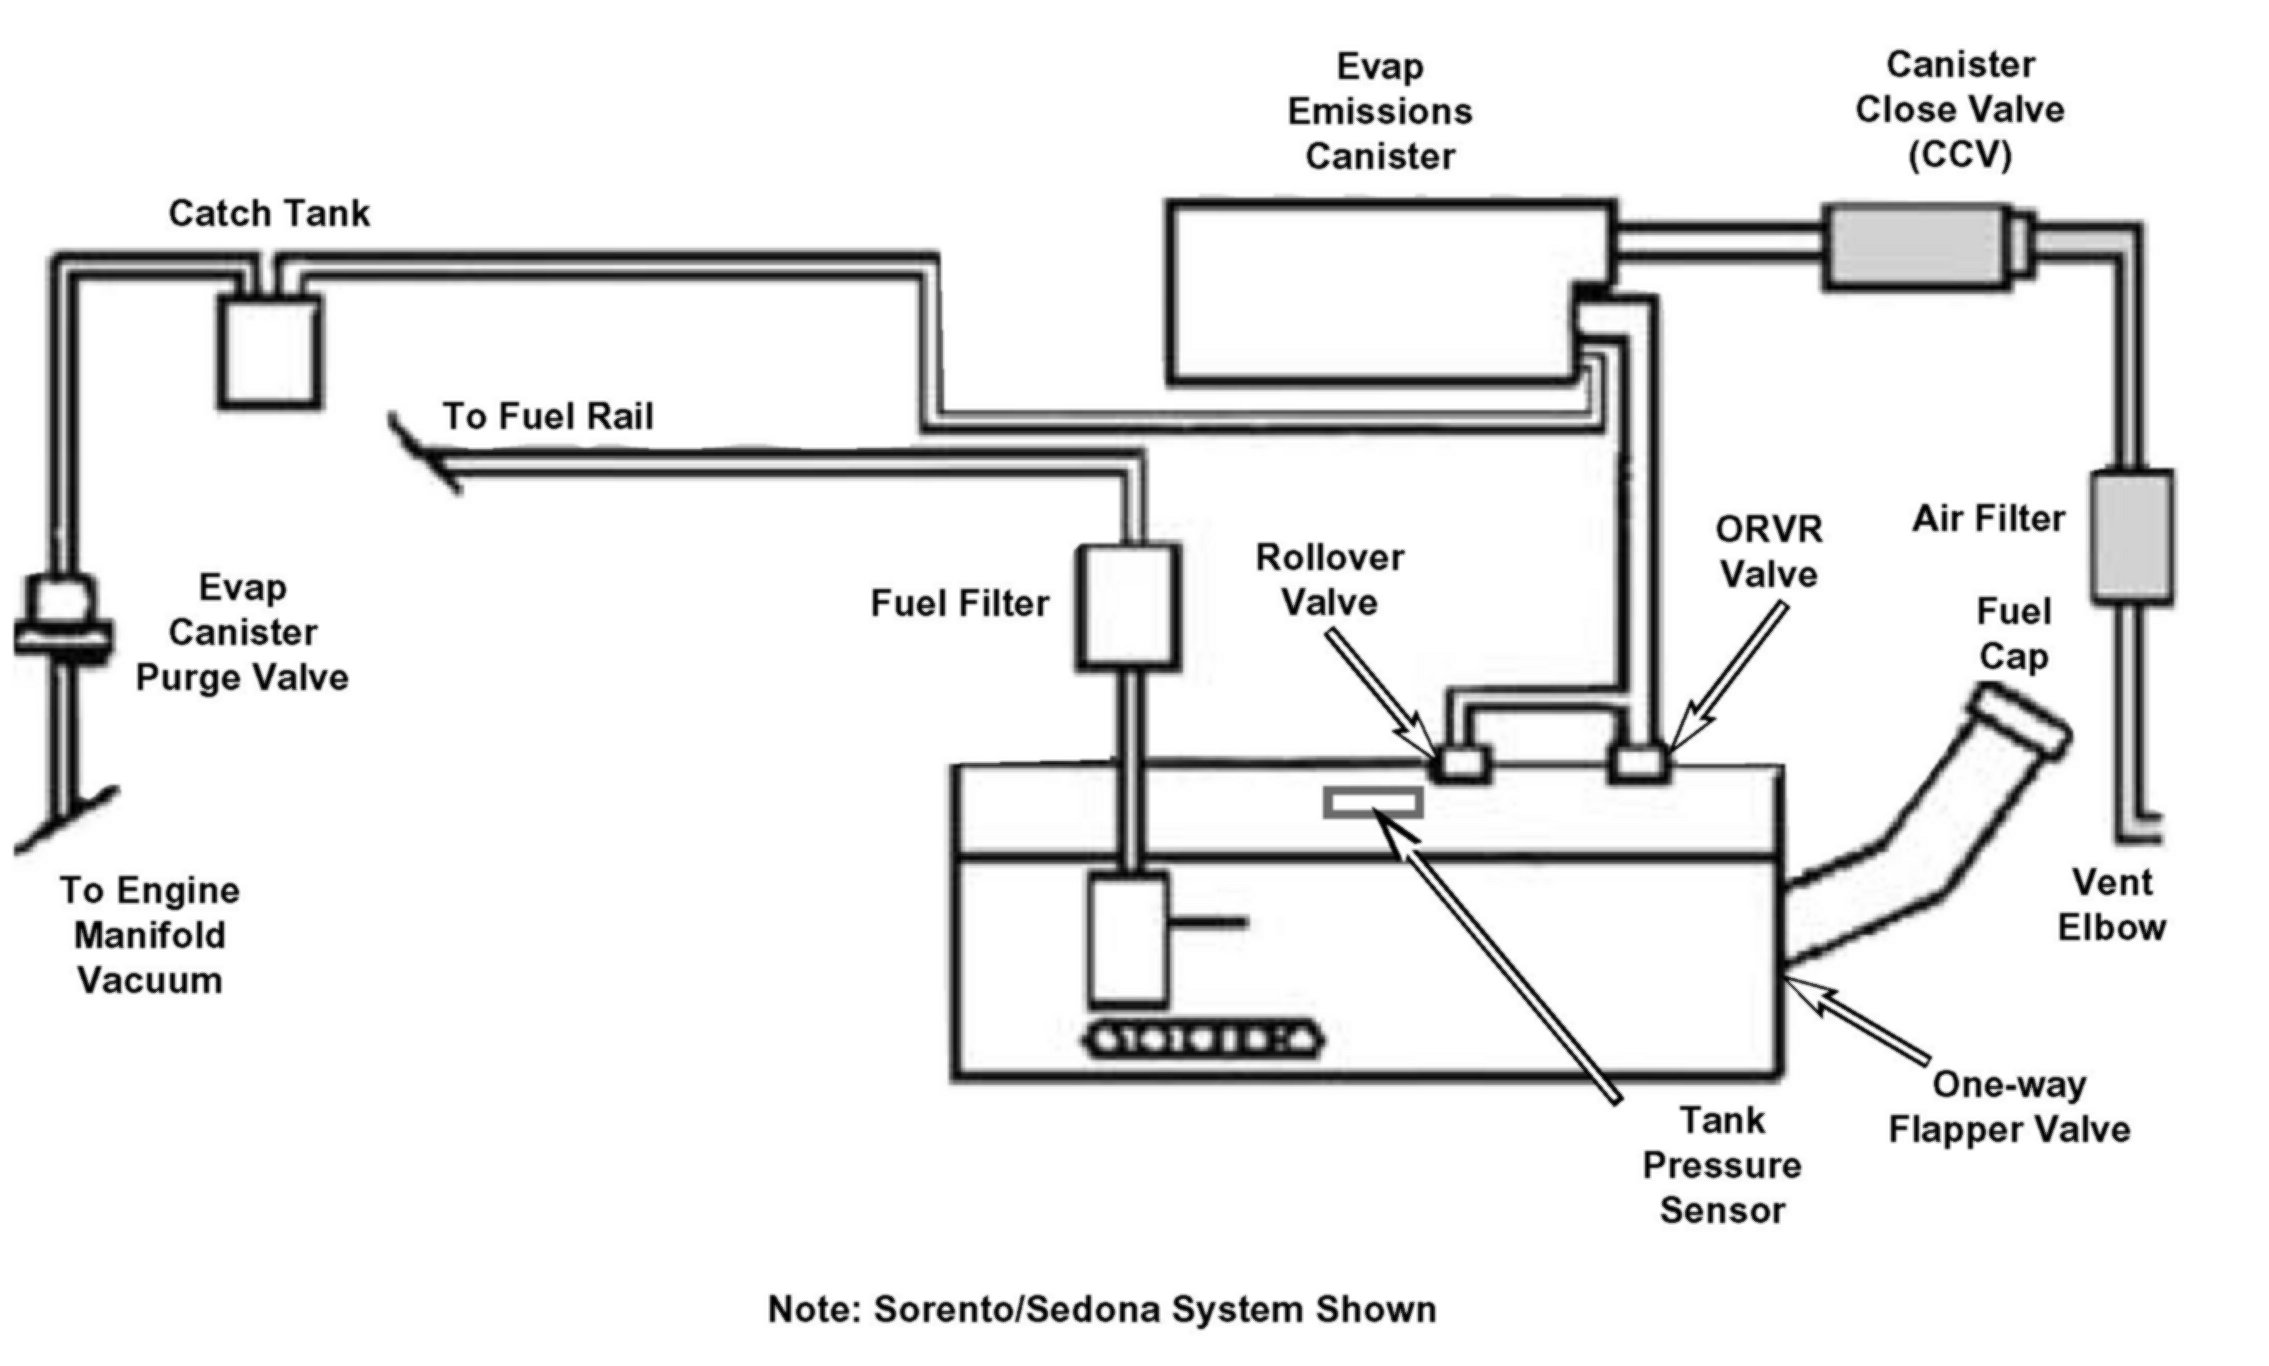 Where Is The Fuel Pump Fuse Located In A 1996 Chevy Pickup V    624328 also Discussion C3589 ds552746 moreover 8852CH33 as well 6sedo Ford Explorer Xlt Vent Solenoid Located moreover Index php. on ford ranger charcoal system